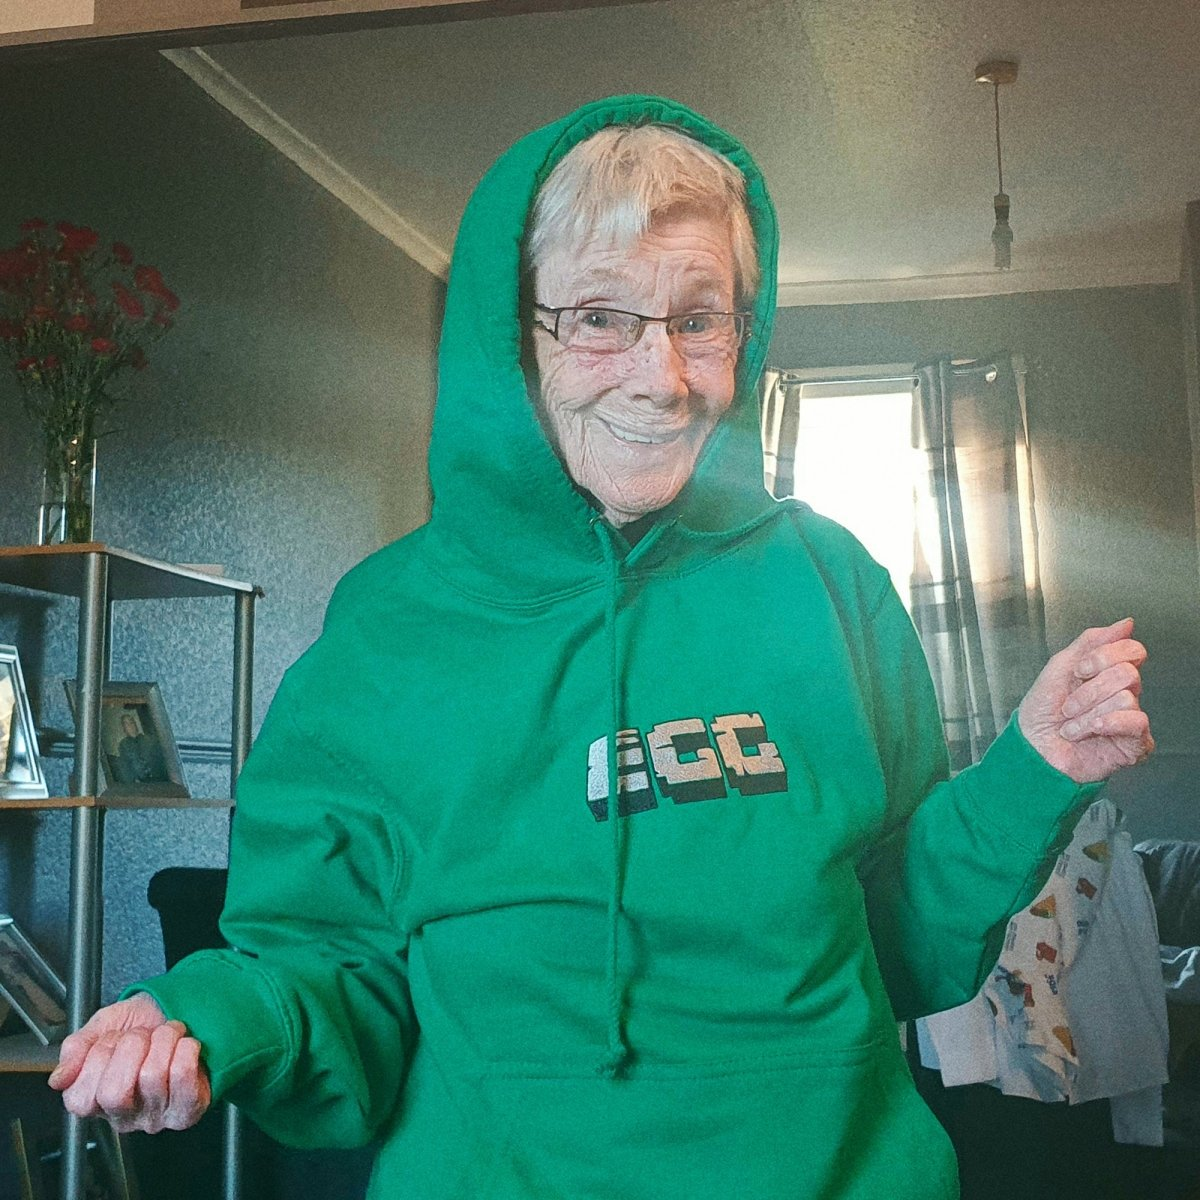 Epic Gamer Grandma - Minecraft EGG Green Embroidered Hoodie - The Fresh Stuff